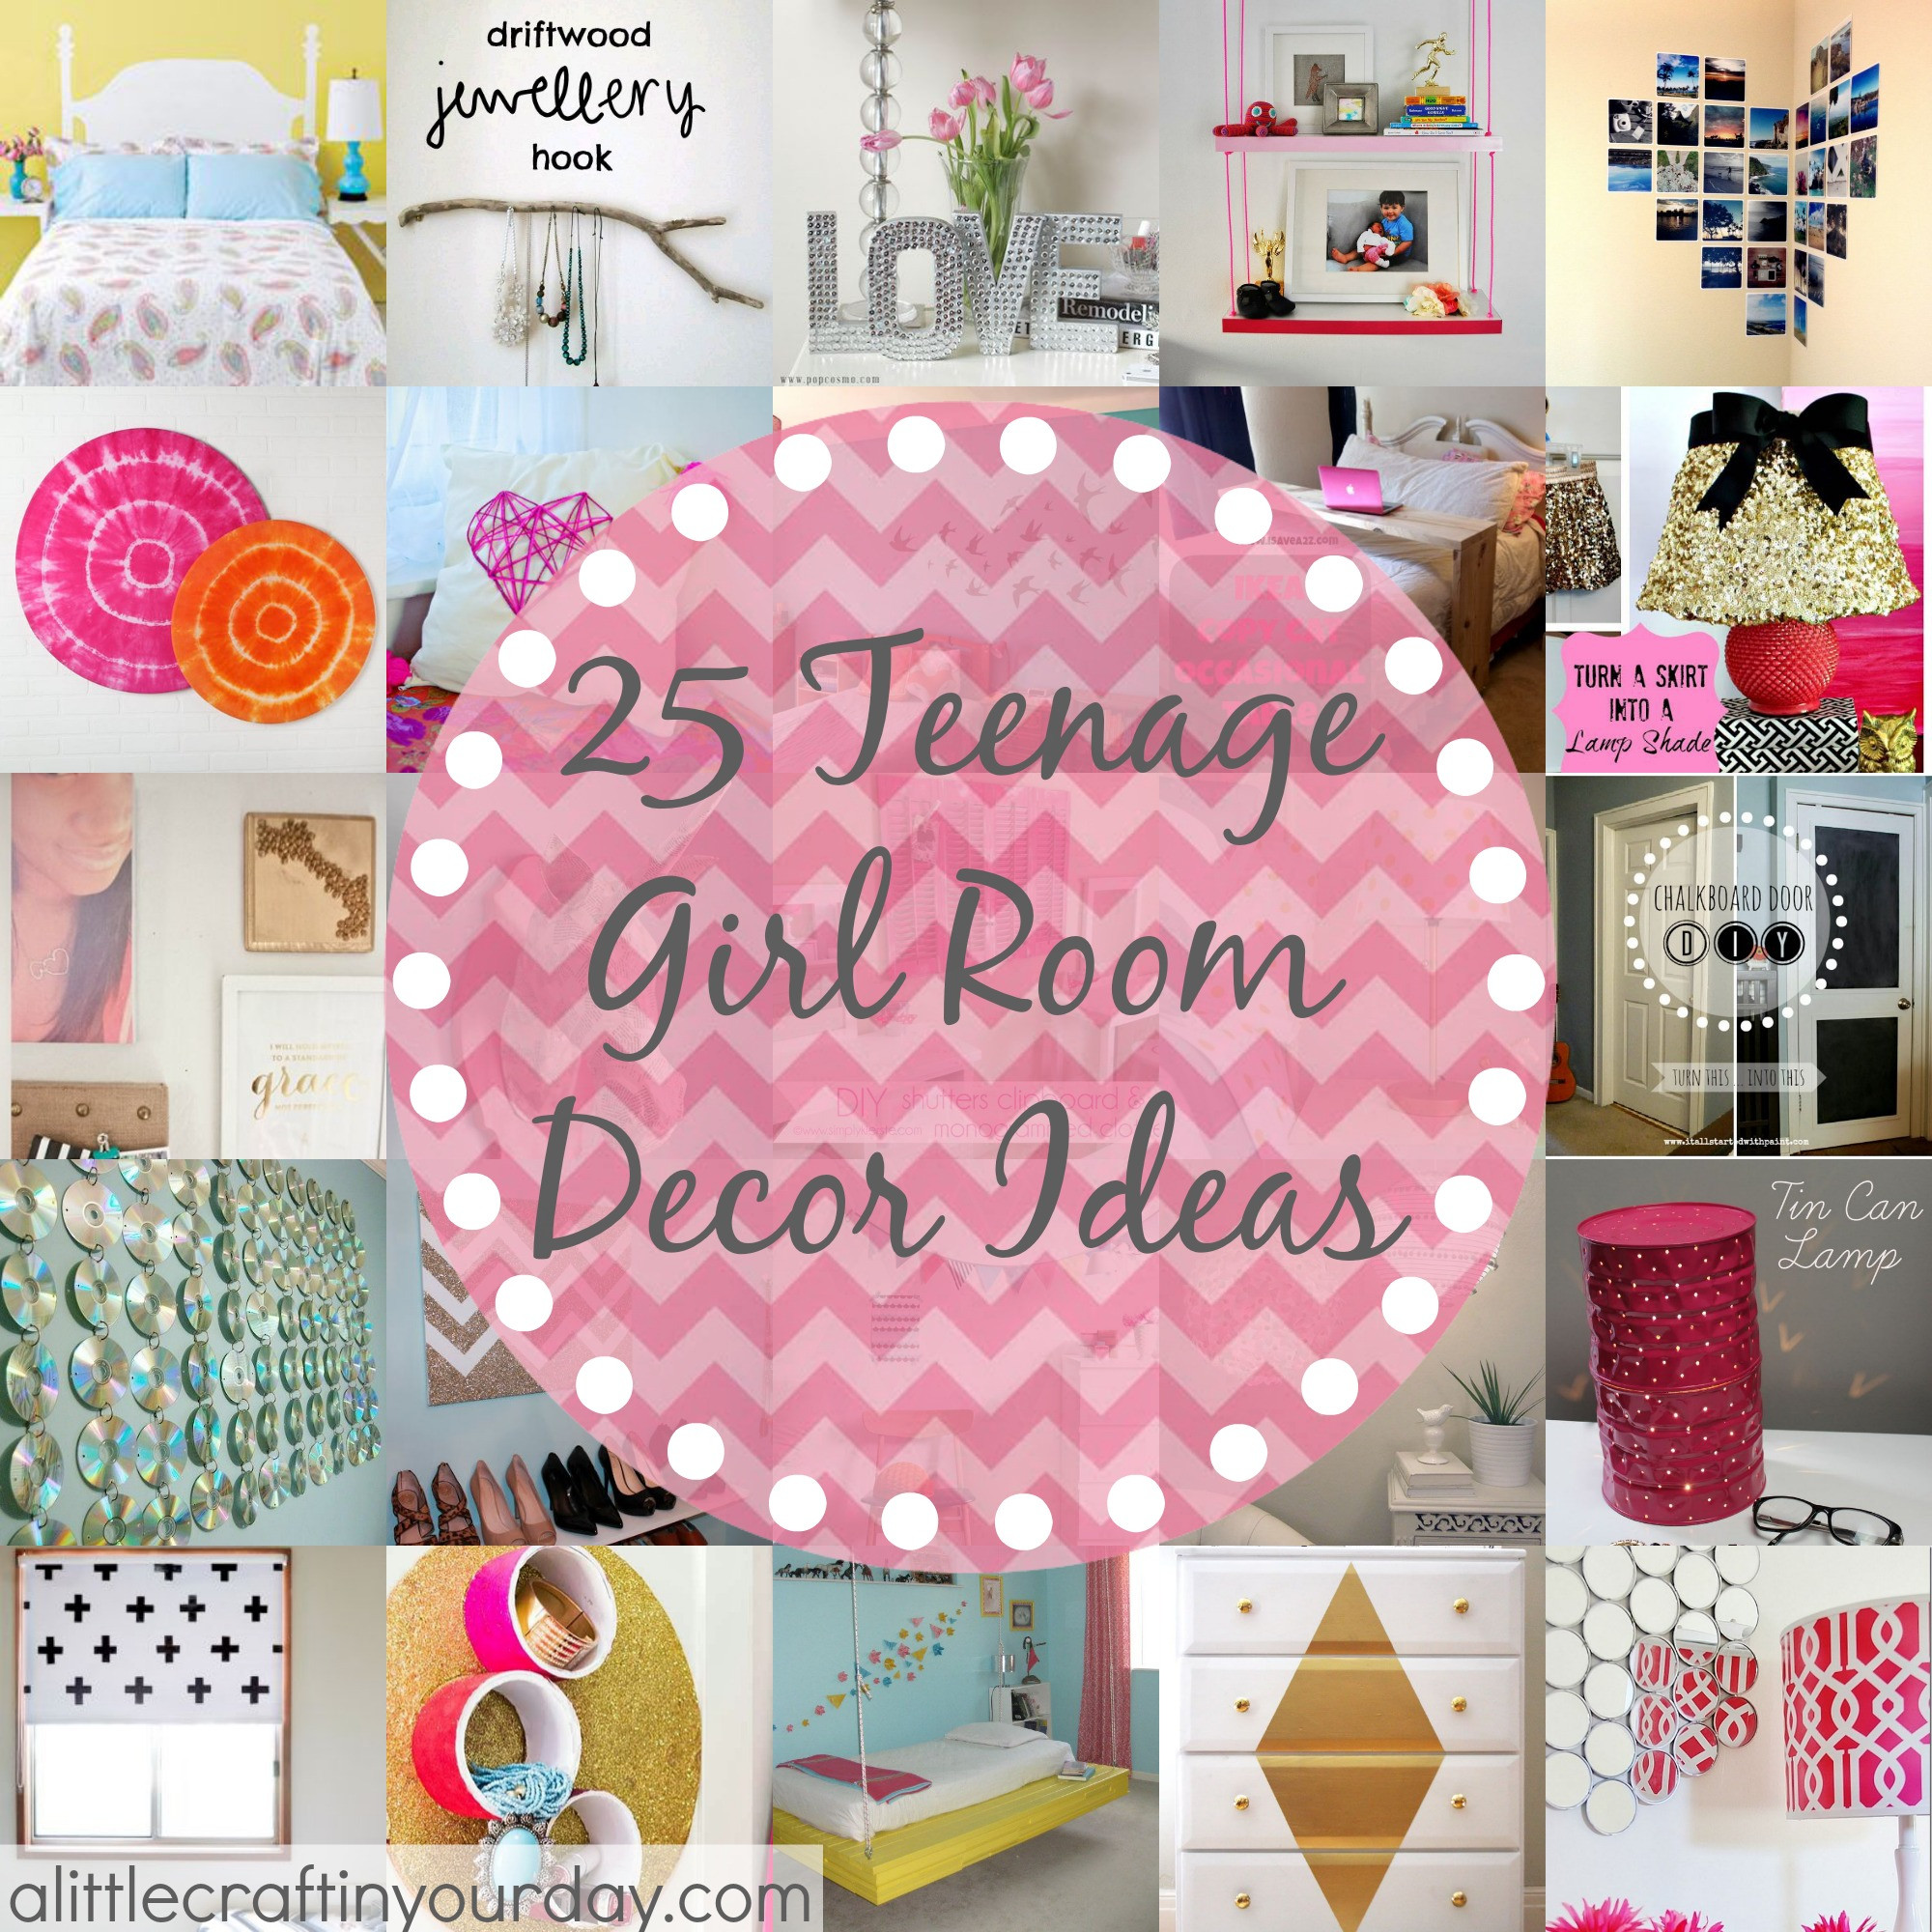 Best ideas about DIY Room Decoration For Girls . Save or Pin 25 More Teenage Girl Room Decor Ideas A Little Craft In Now.